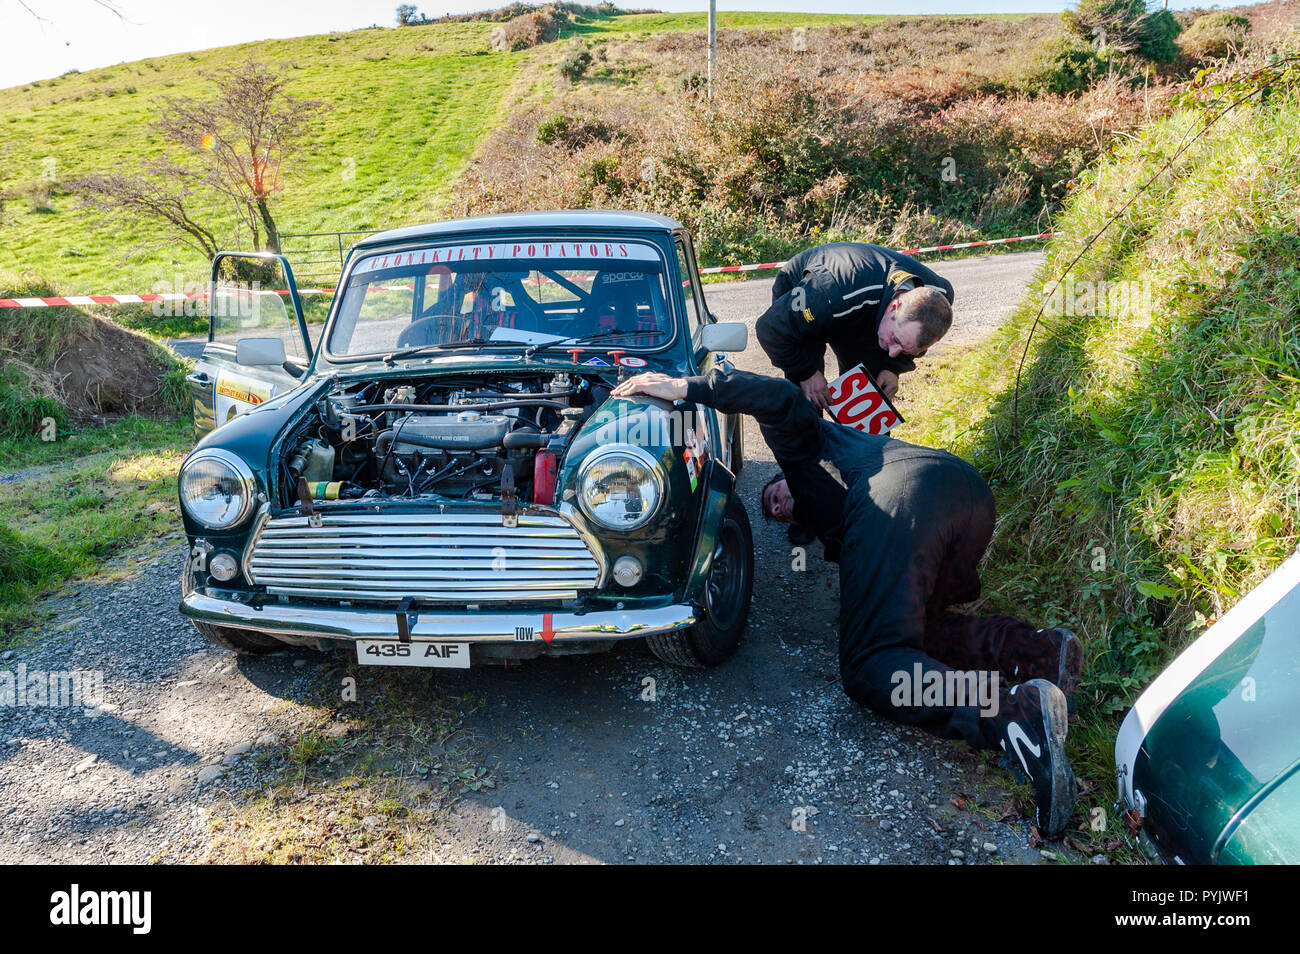 ballydehob-west-cork-ireland-driver-maurice-whelton-and-his-navigator-ivan-bennett-pulled-out-of-the-rally-due-to-a-broken-shock-on-their-austin-mini-during-a-stage-of-the-fastnet-rally-2018-organised-by-skibbereen-car-club-credit-andy-gibsonalamy-live-news-PYJWF1.jpg